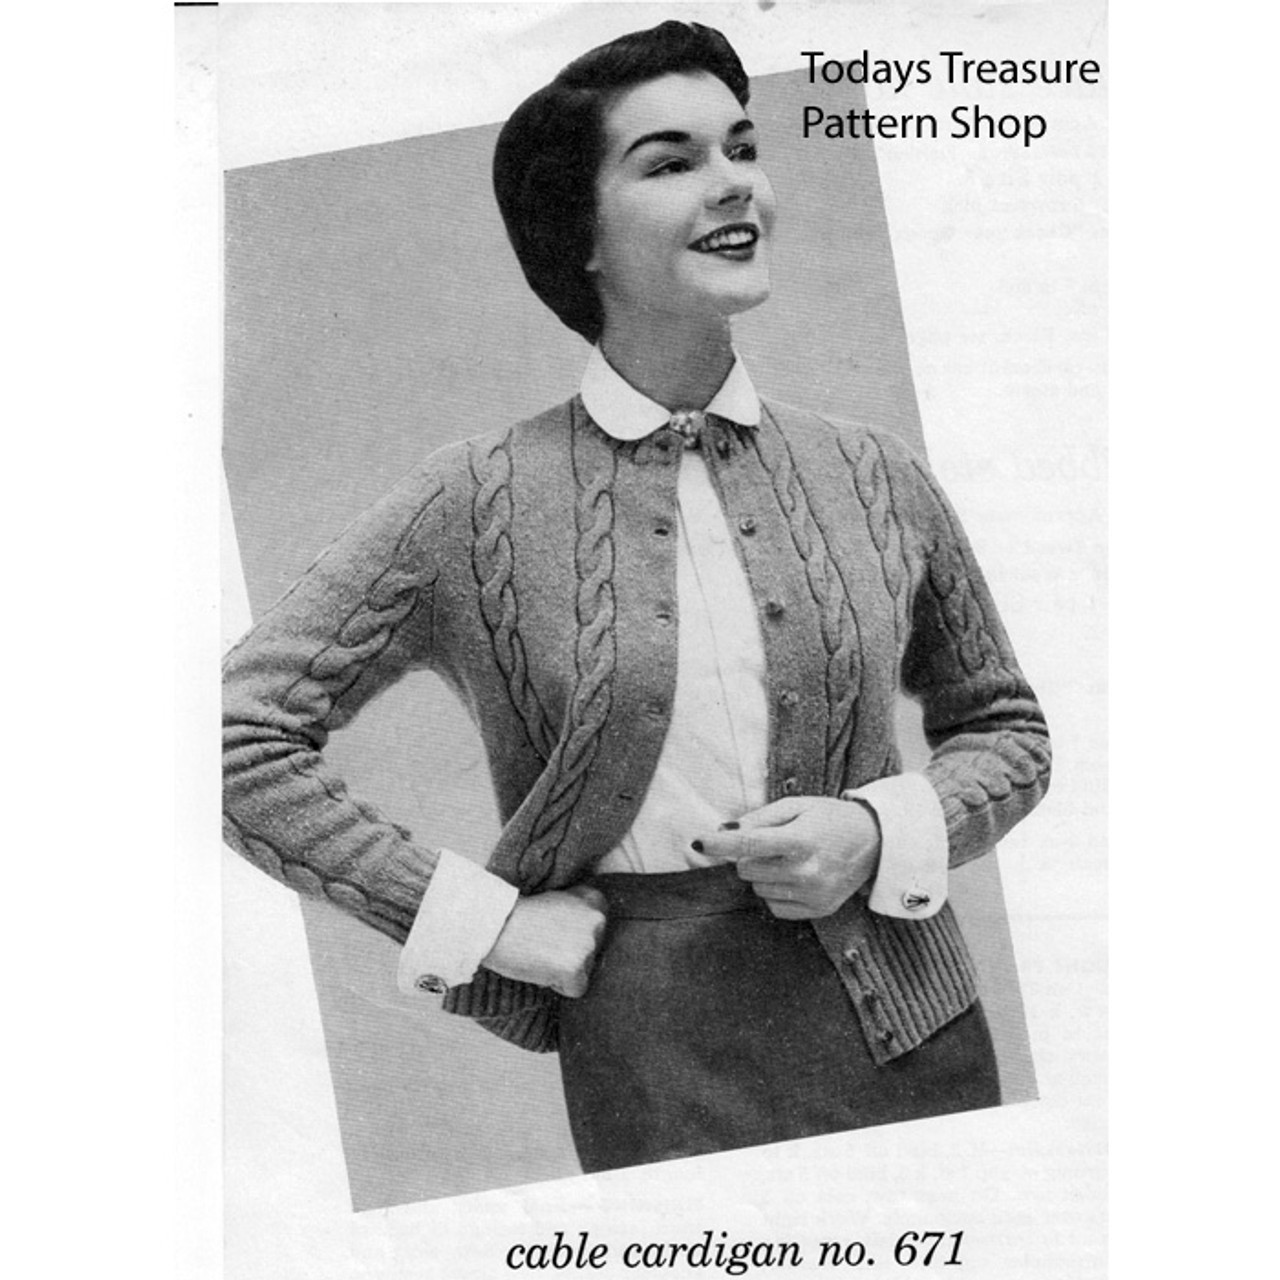 Vintage Cable Cardigan Sweater Knitting Pattern